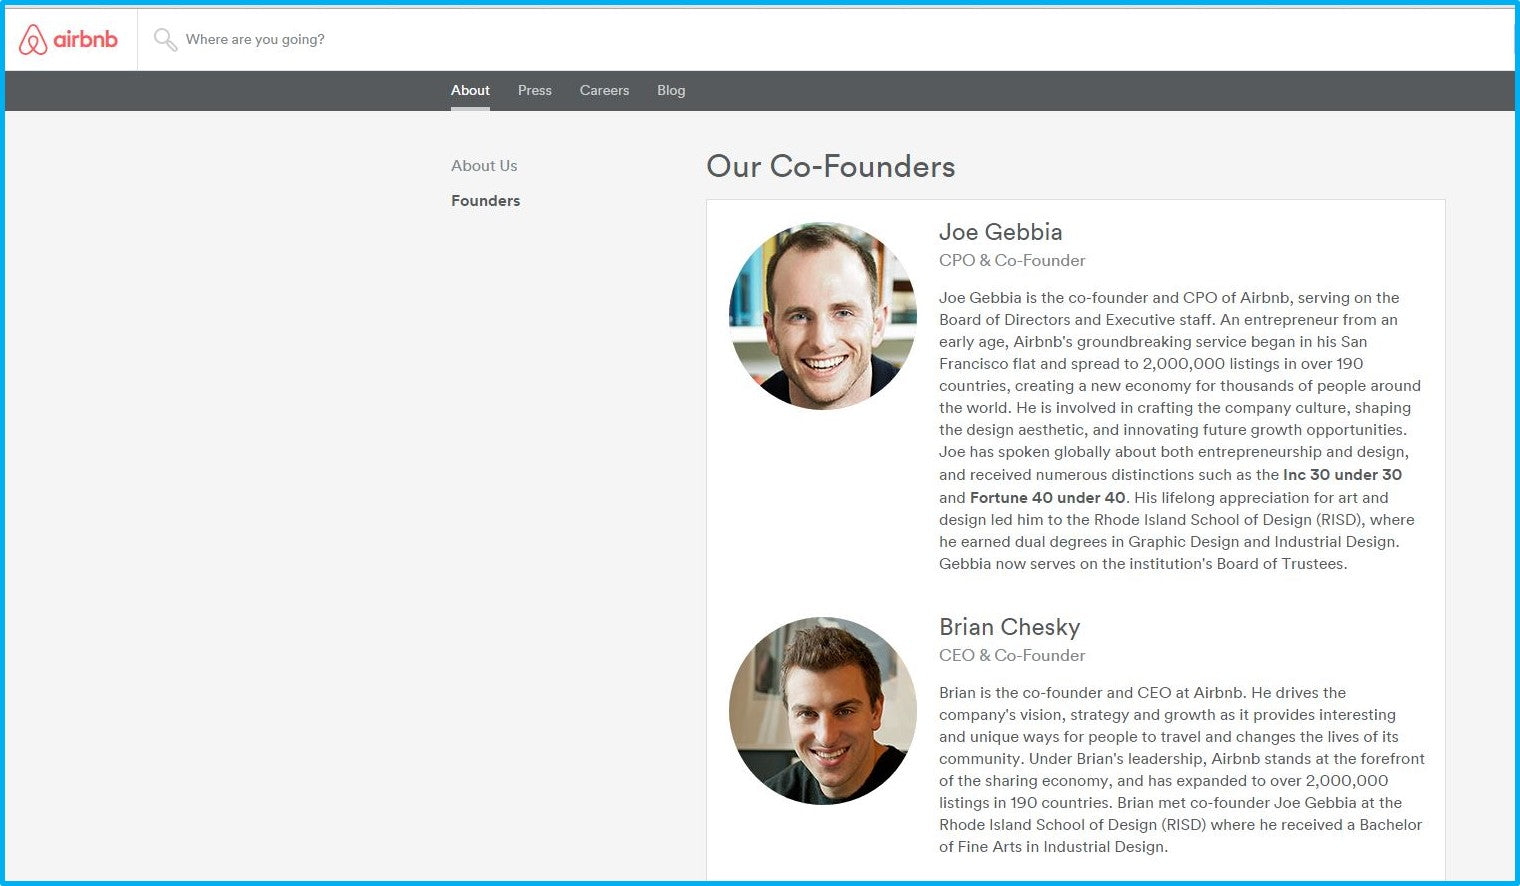 airbnb founder page